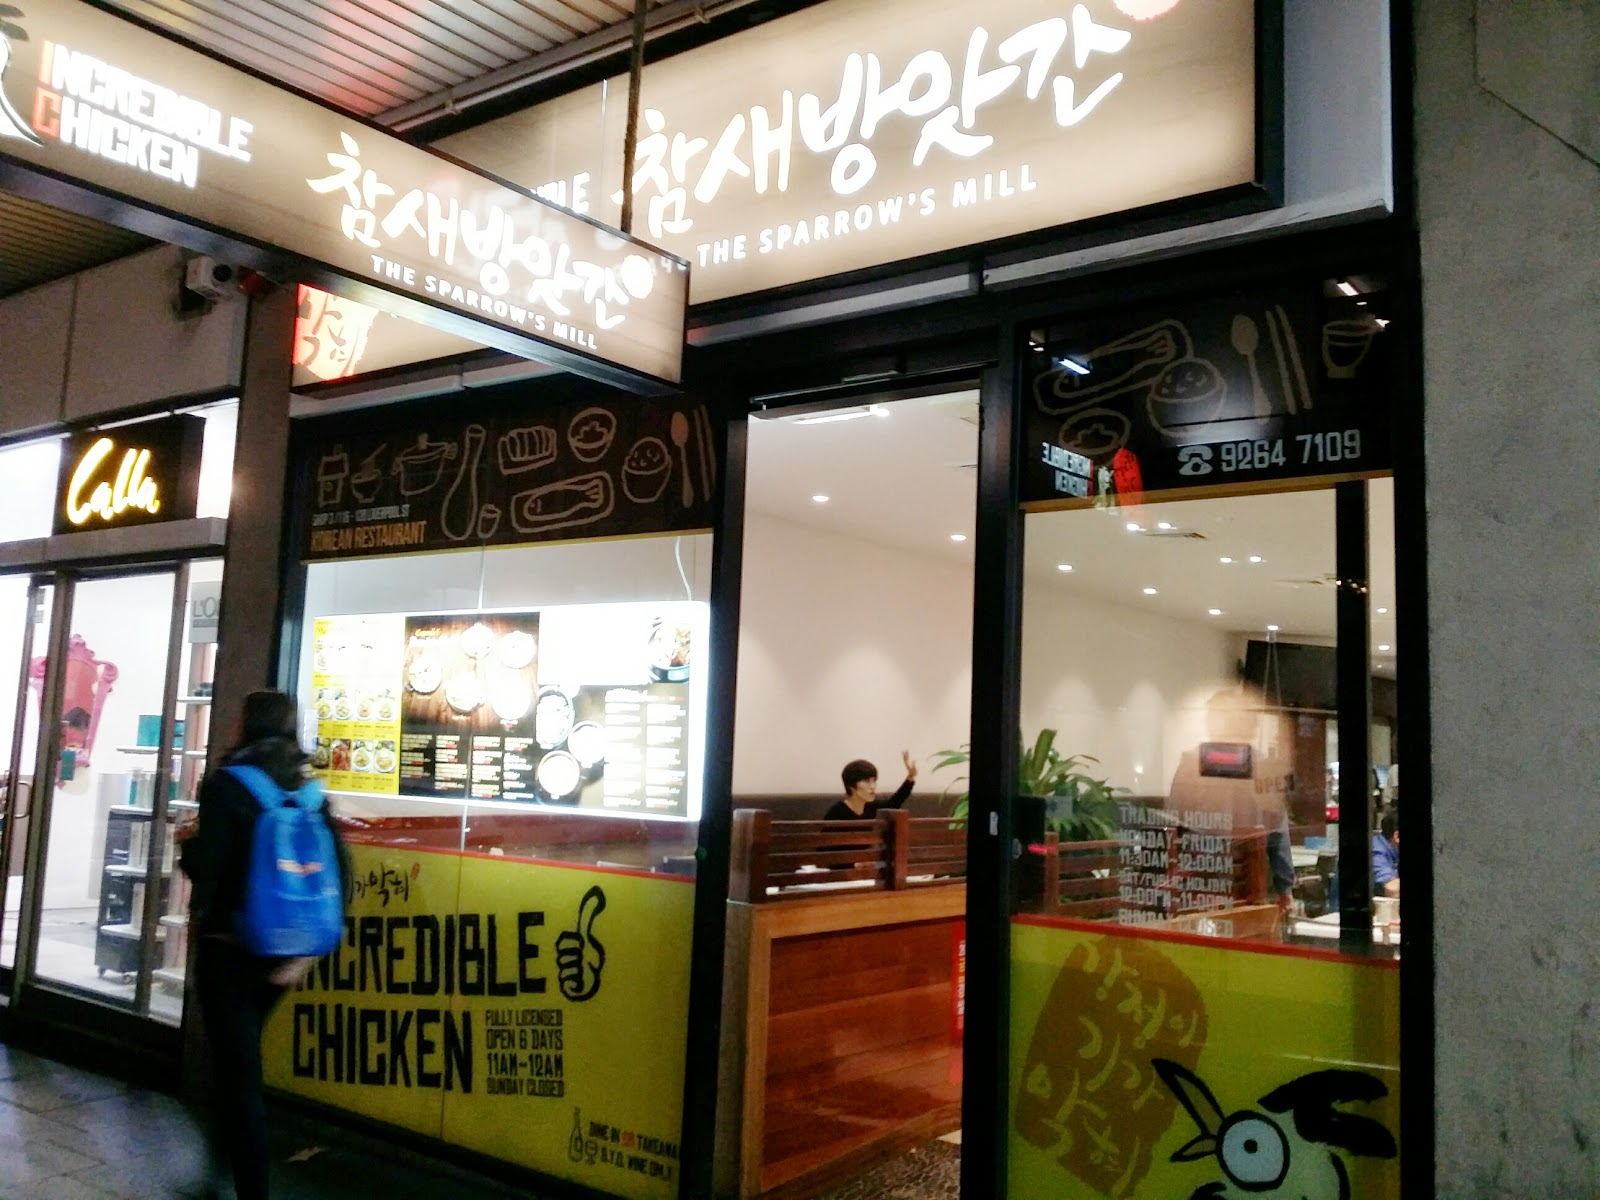 ... Hungry FoodTech : The Sparrow's Mill - The Incredible Chicken, Sydney